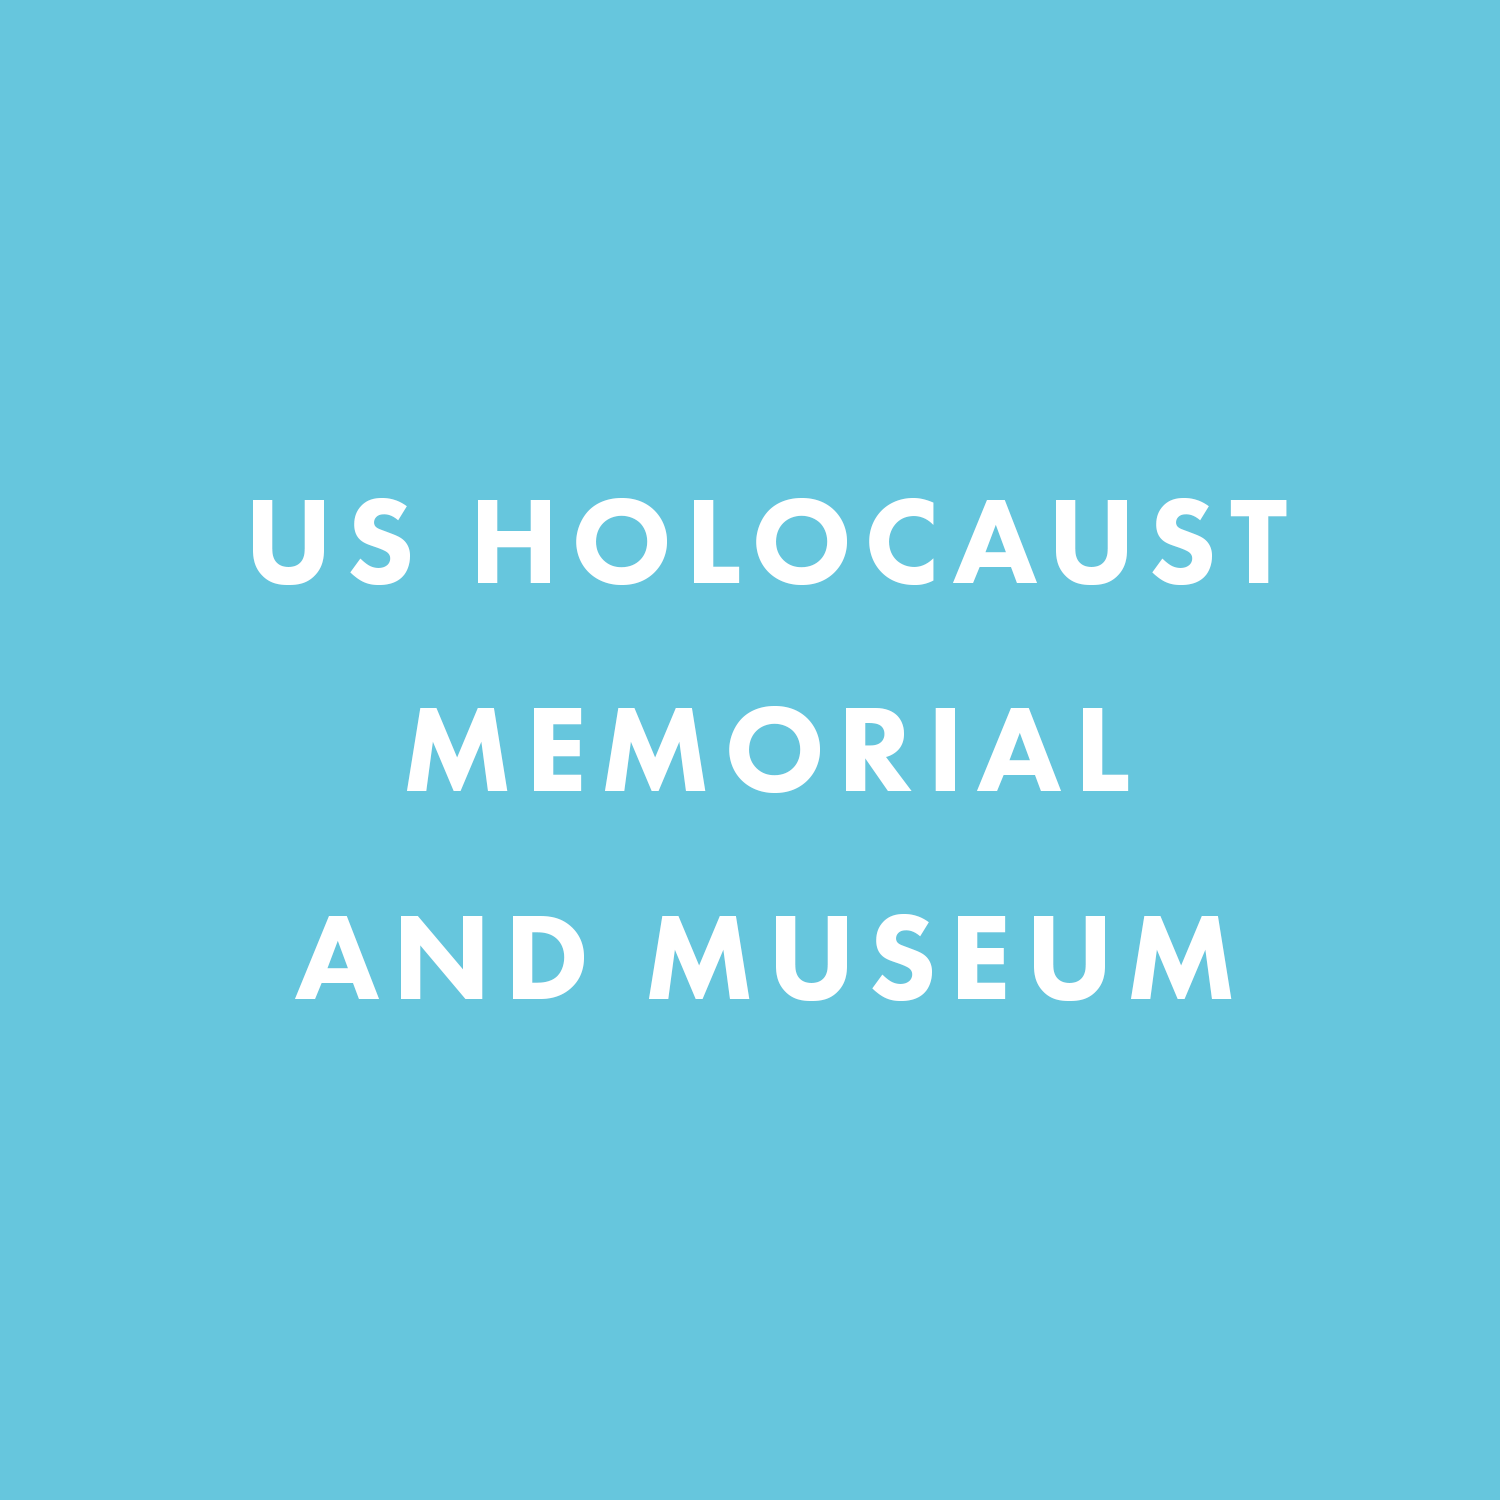 US Holocaust Memorial and Museum